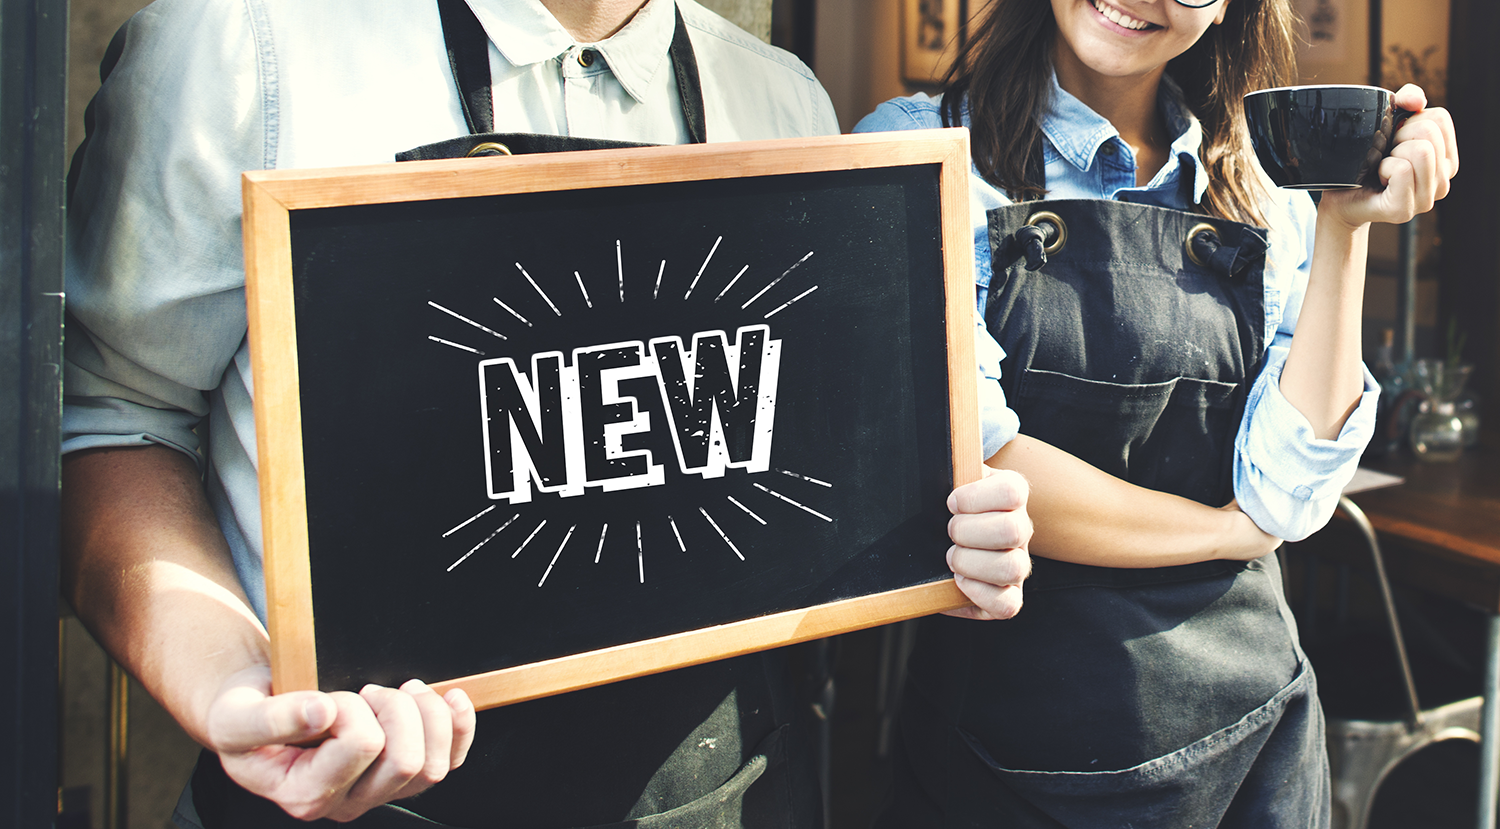 The modern restaurant should look at creating innovating promotions to entice new guests.